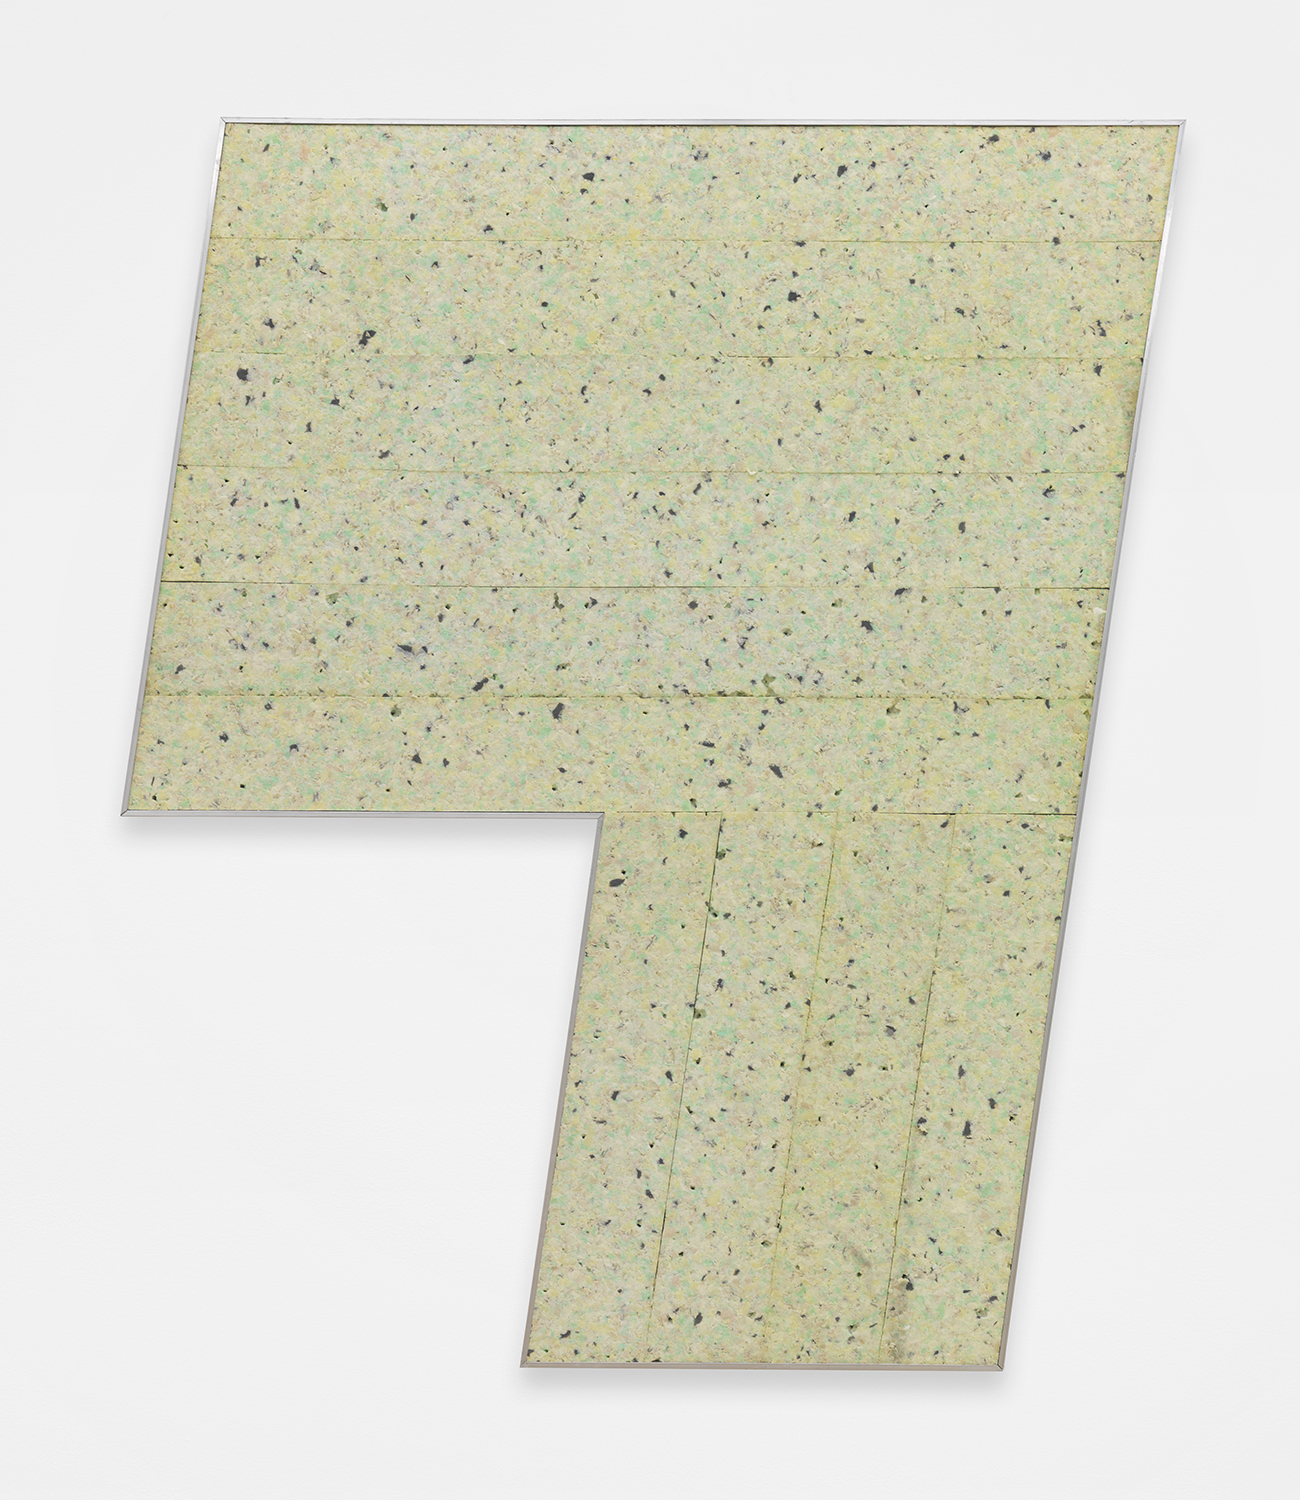 Epitome  2014 Re-bonded foam, aluminum, wooden panel 50 x 39.5 inches